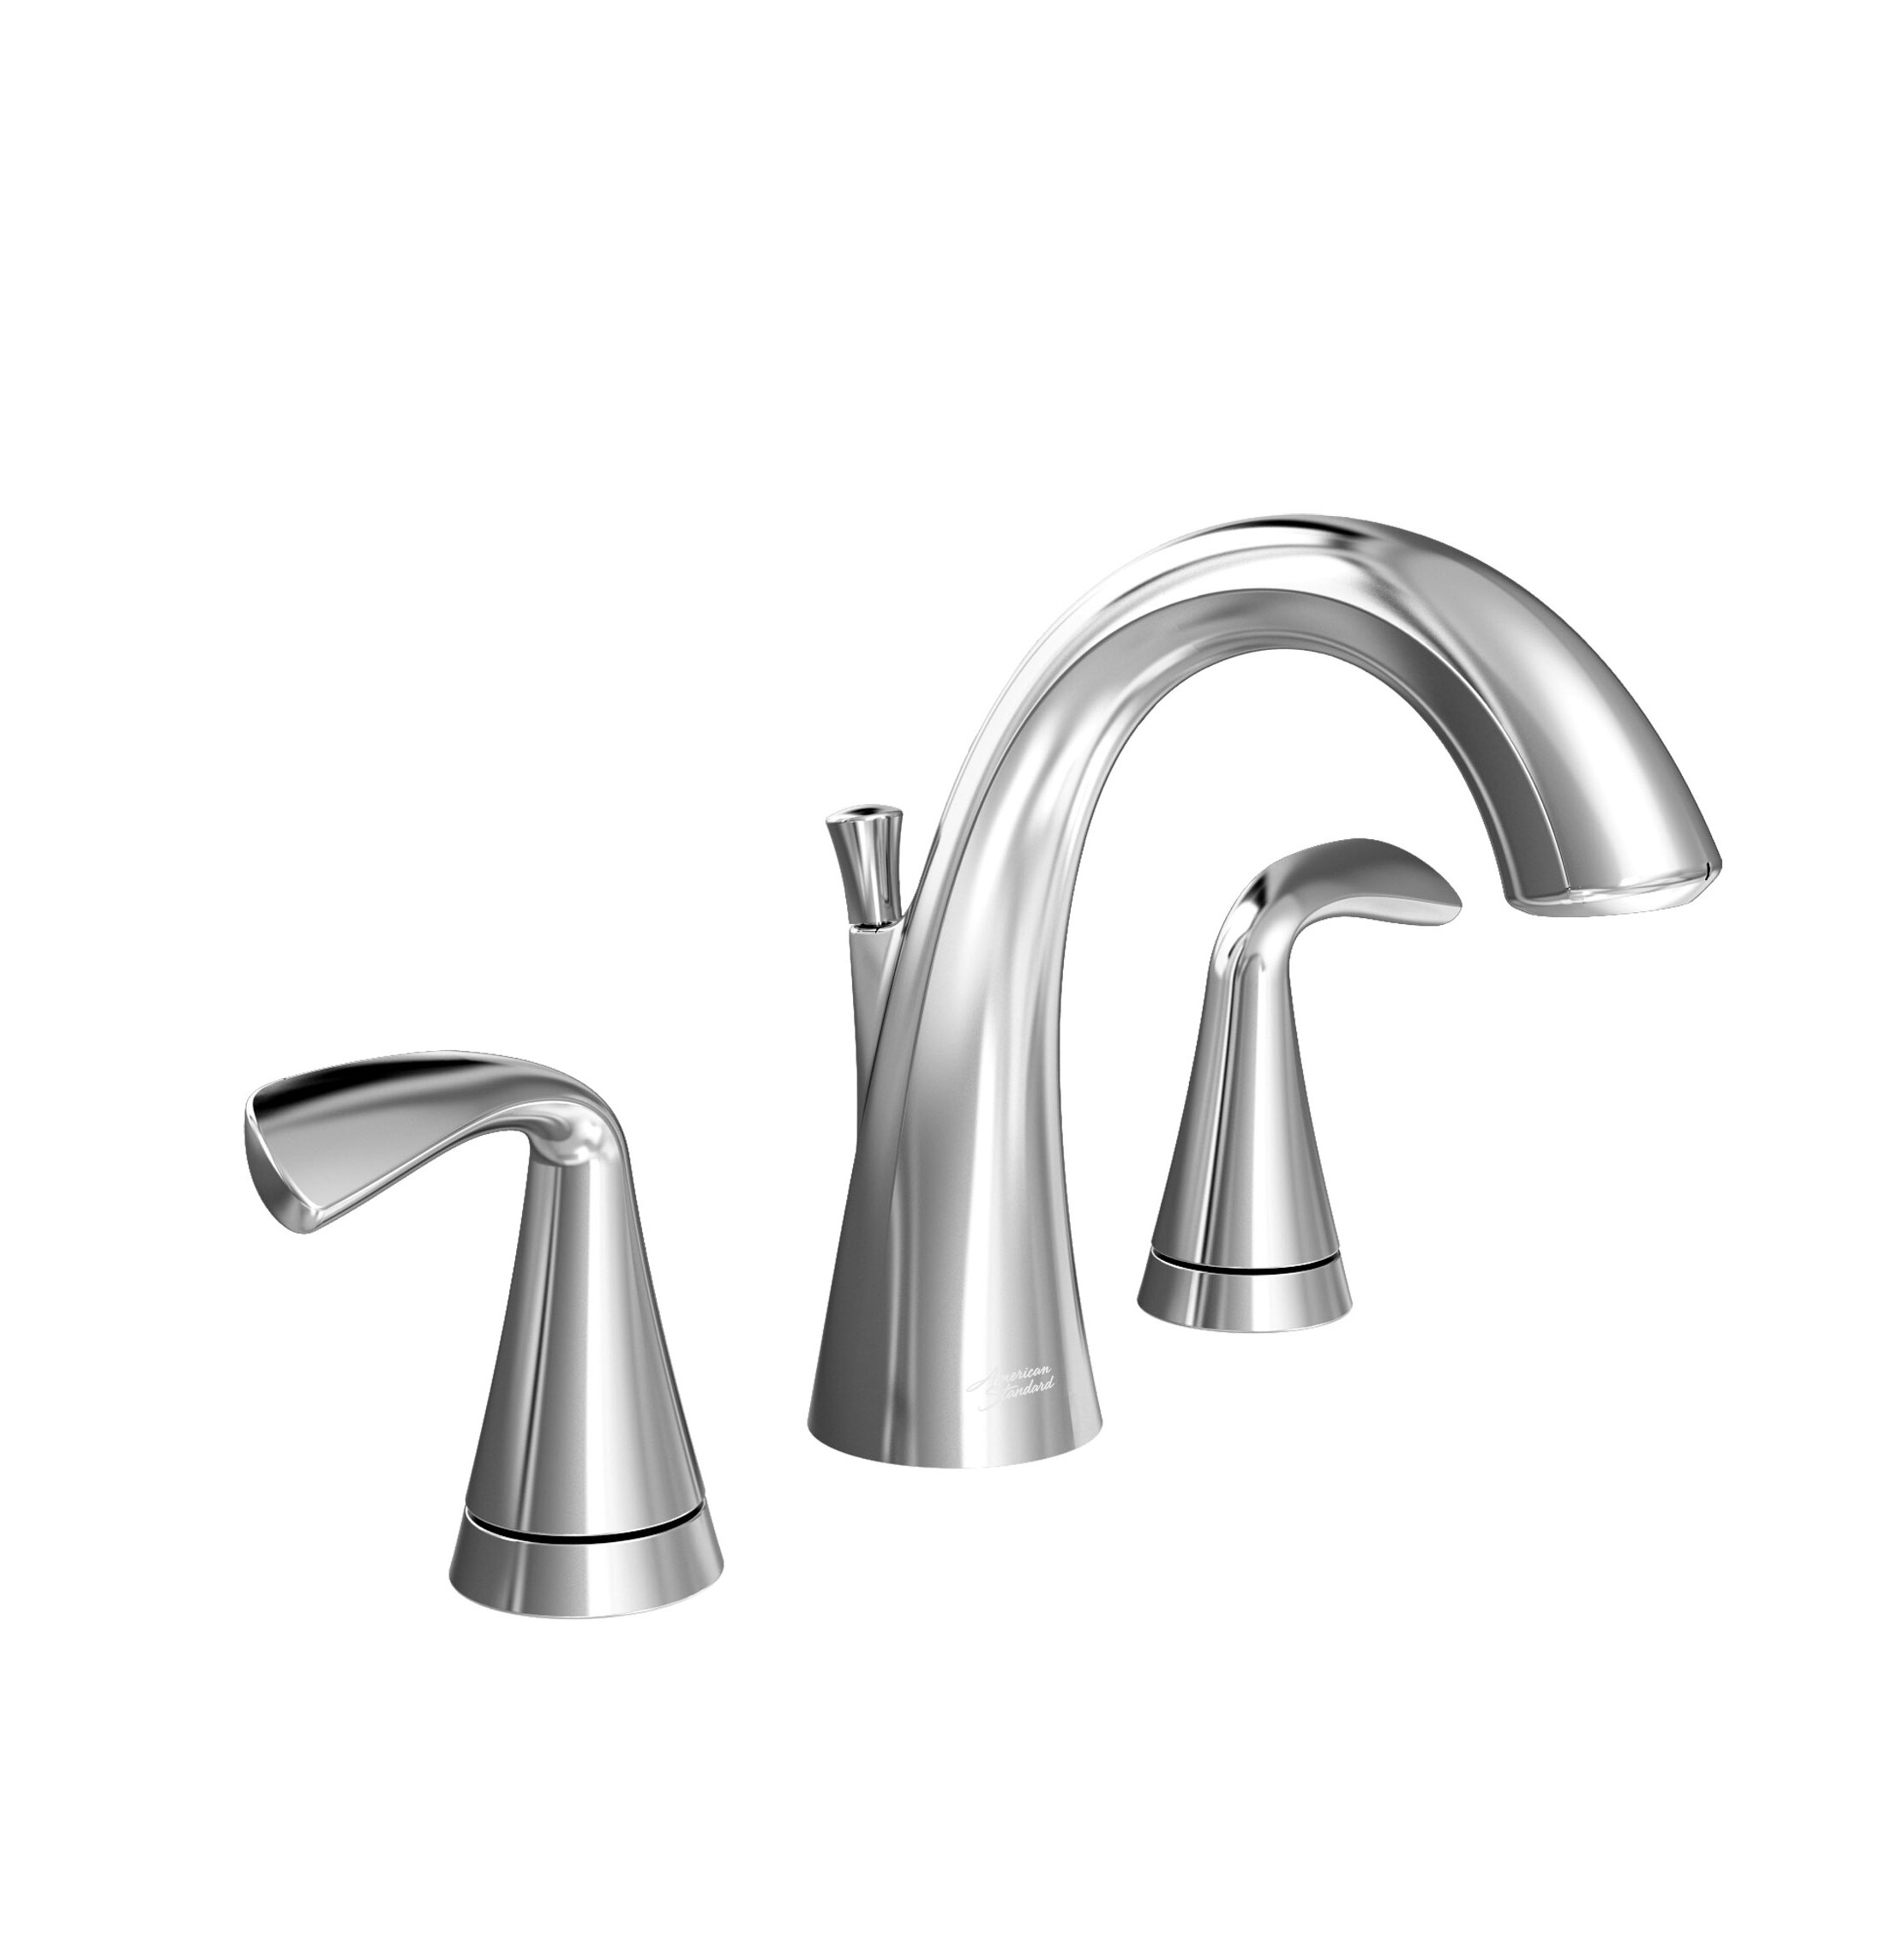 American Standard Fluent Widespread Bathroom Faucet with Drain ...